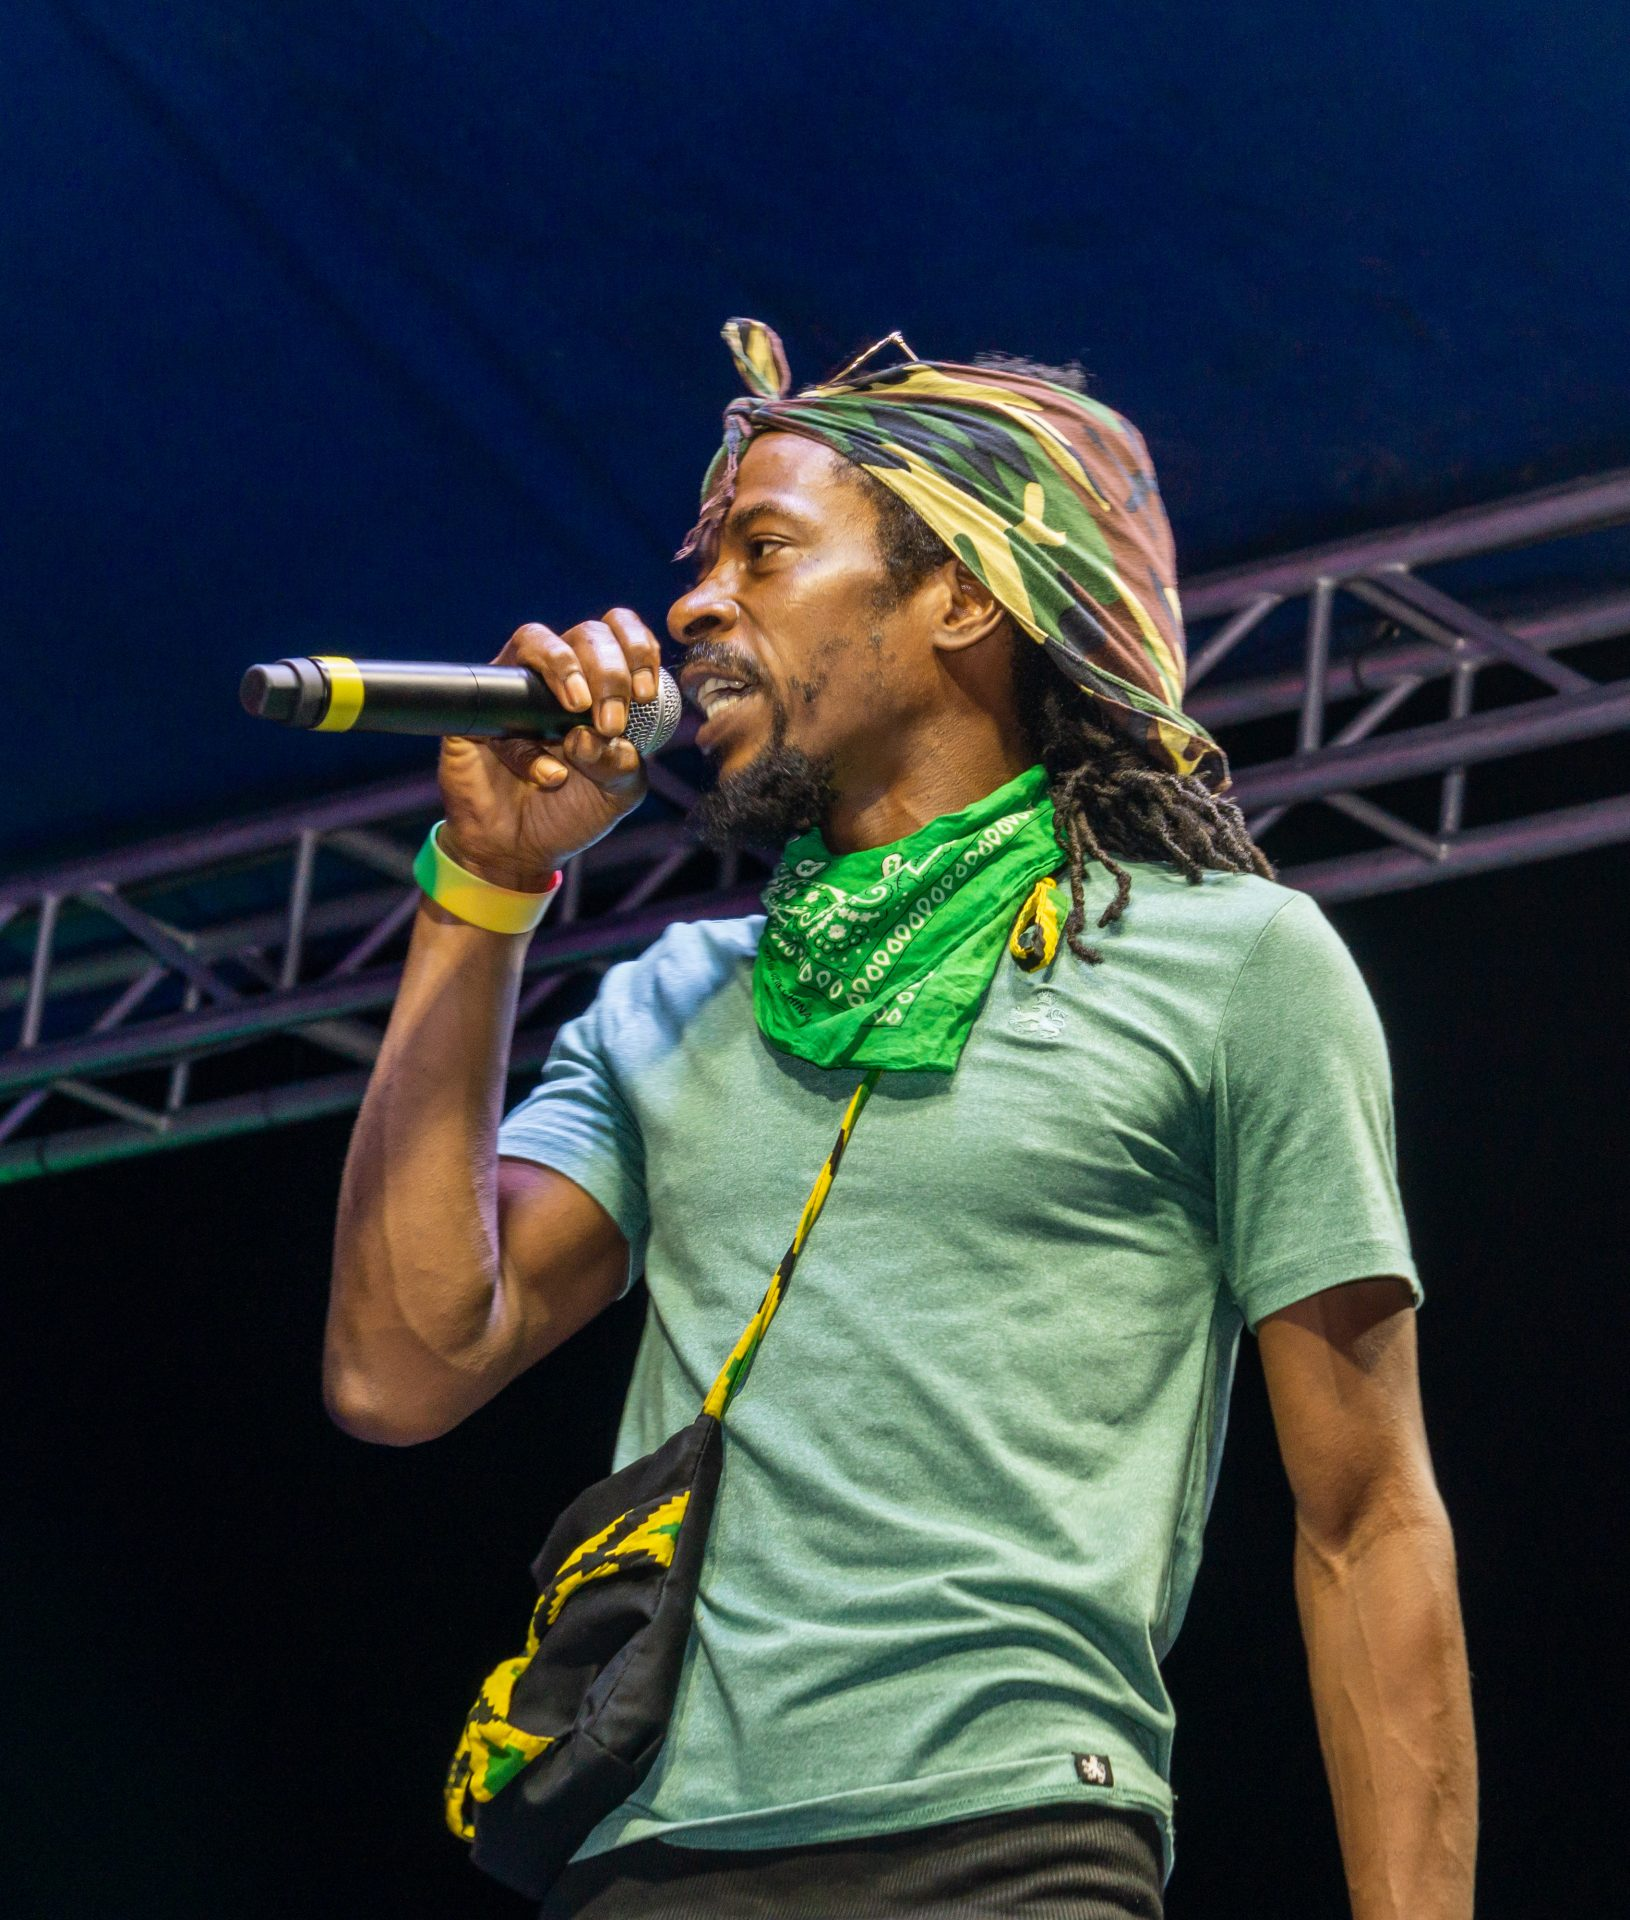 Mission Music: Jamaican Artistes Educate Communities About Climate Change